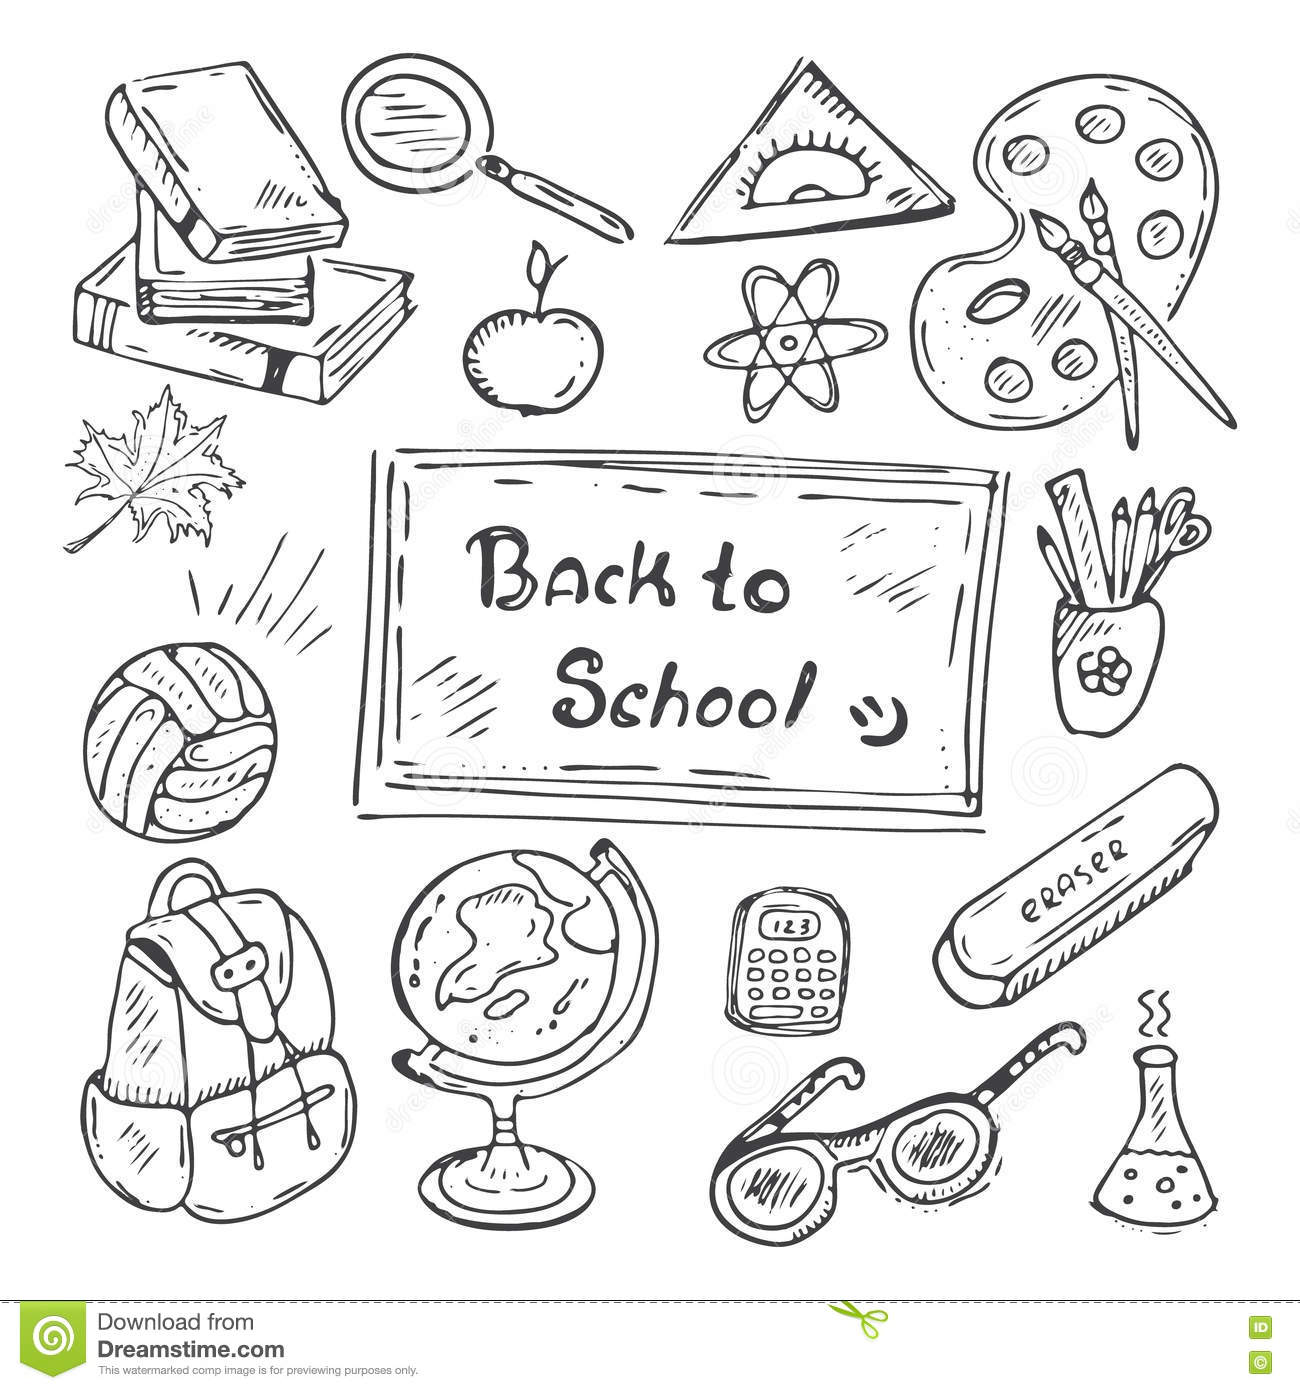 Back To School Hand Drawn Doodle Set Stock Vector